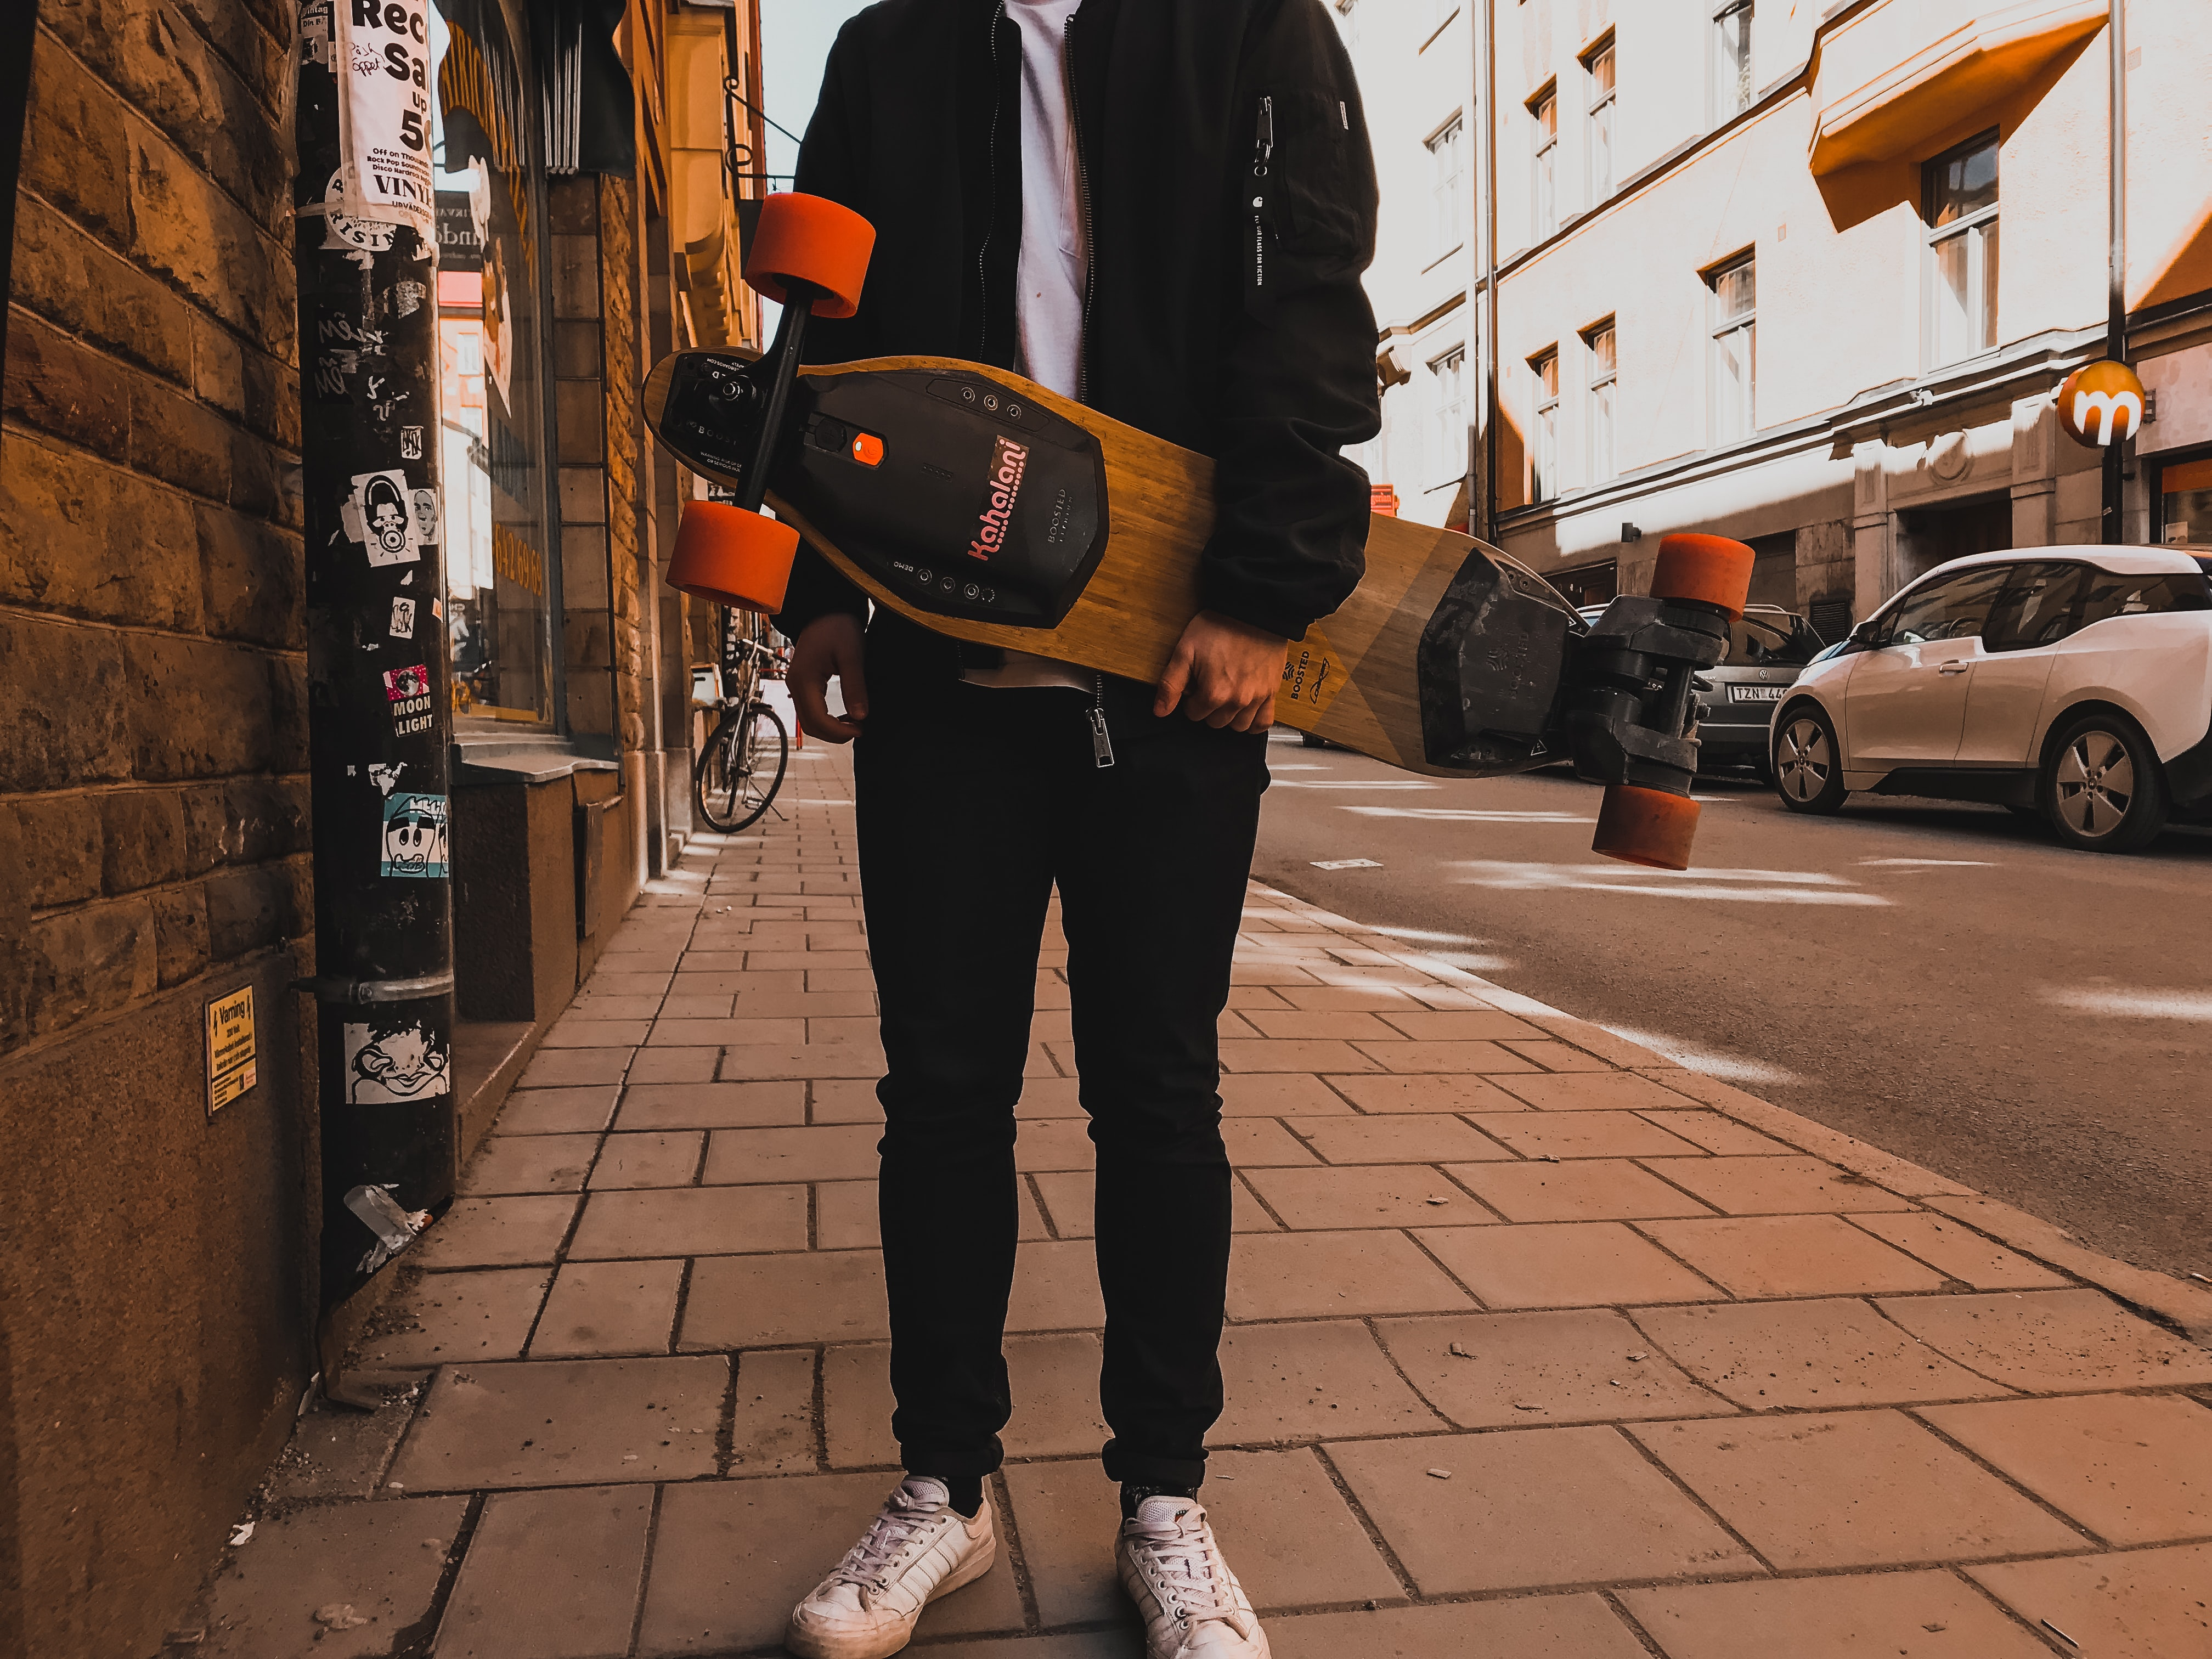 person holding skateboard near building